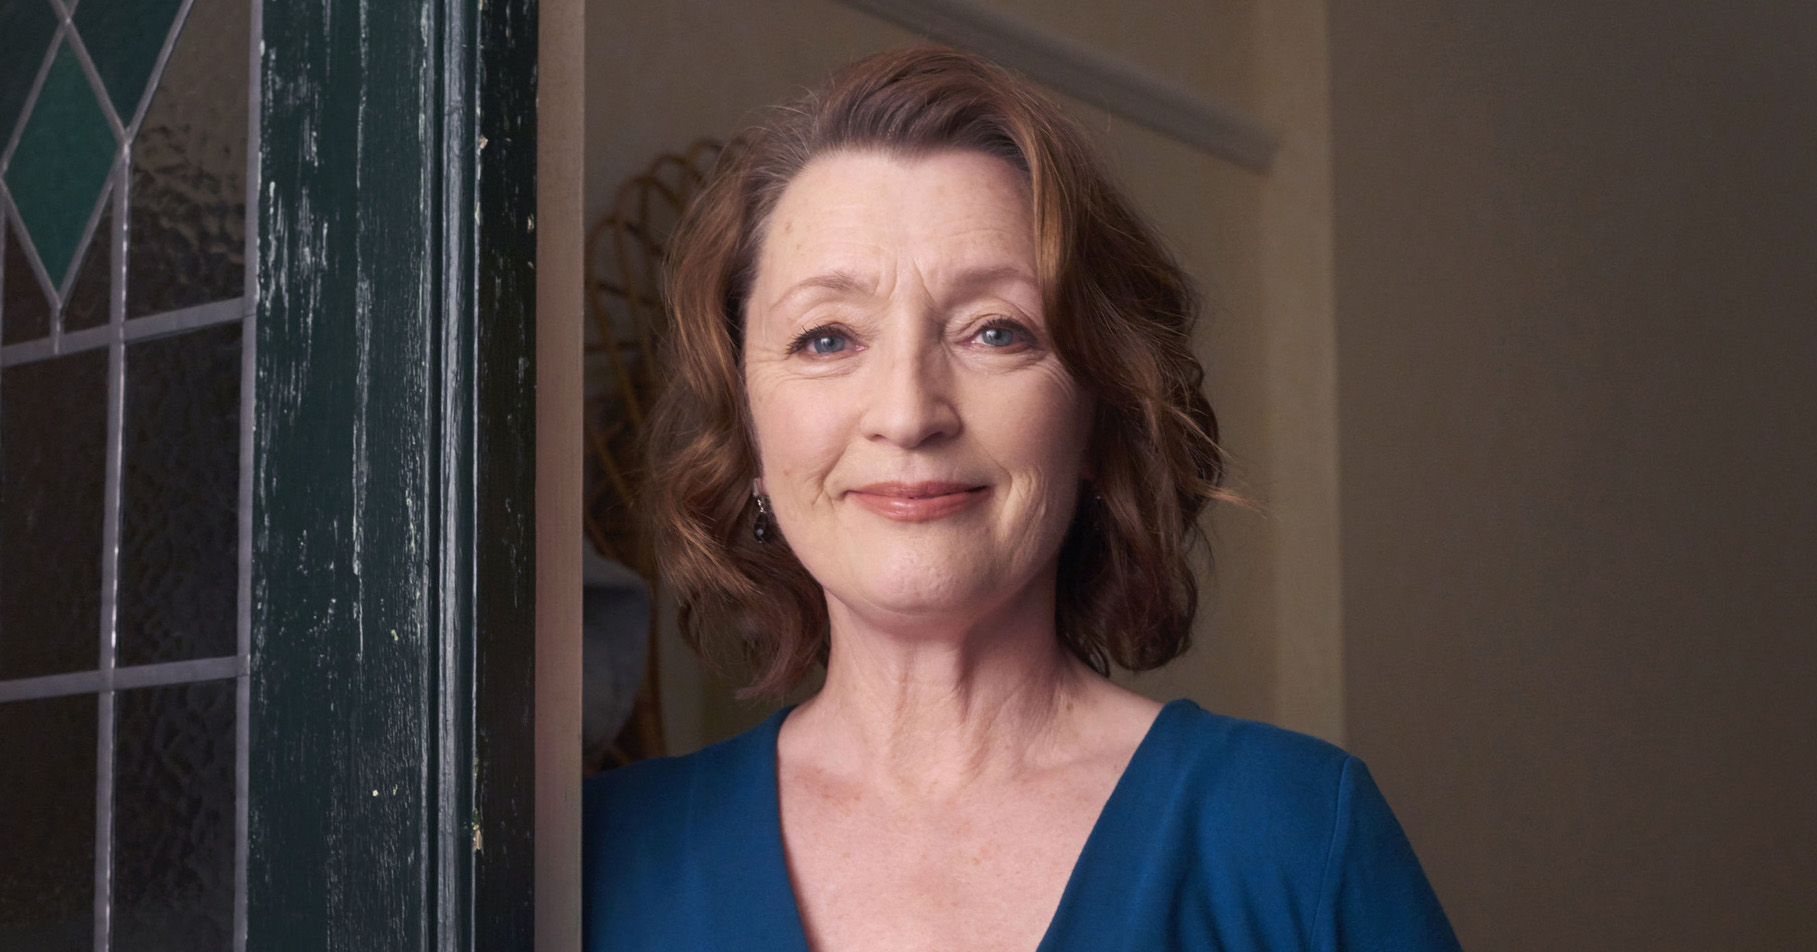 Lesley Manville They might offer Mum to Meryl Streep